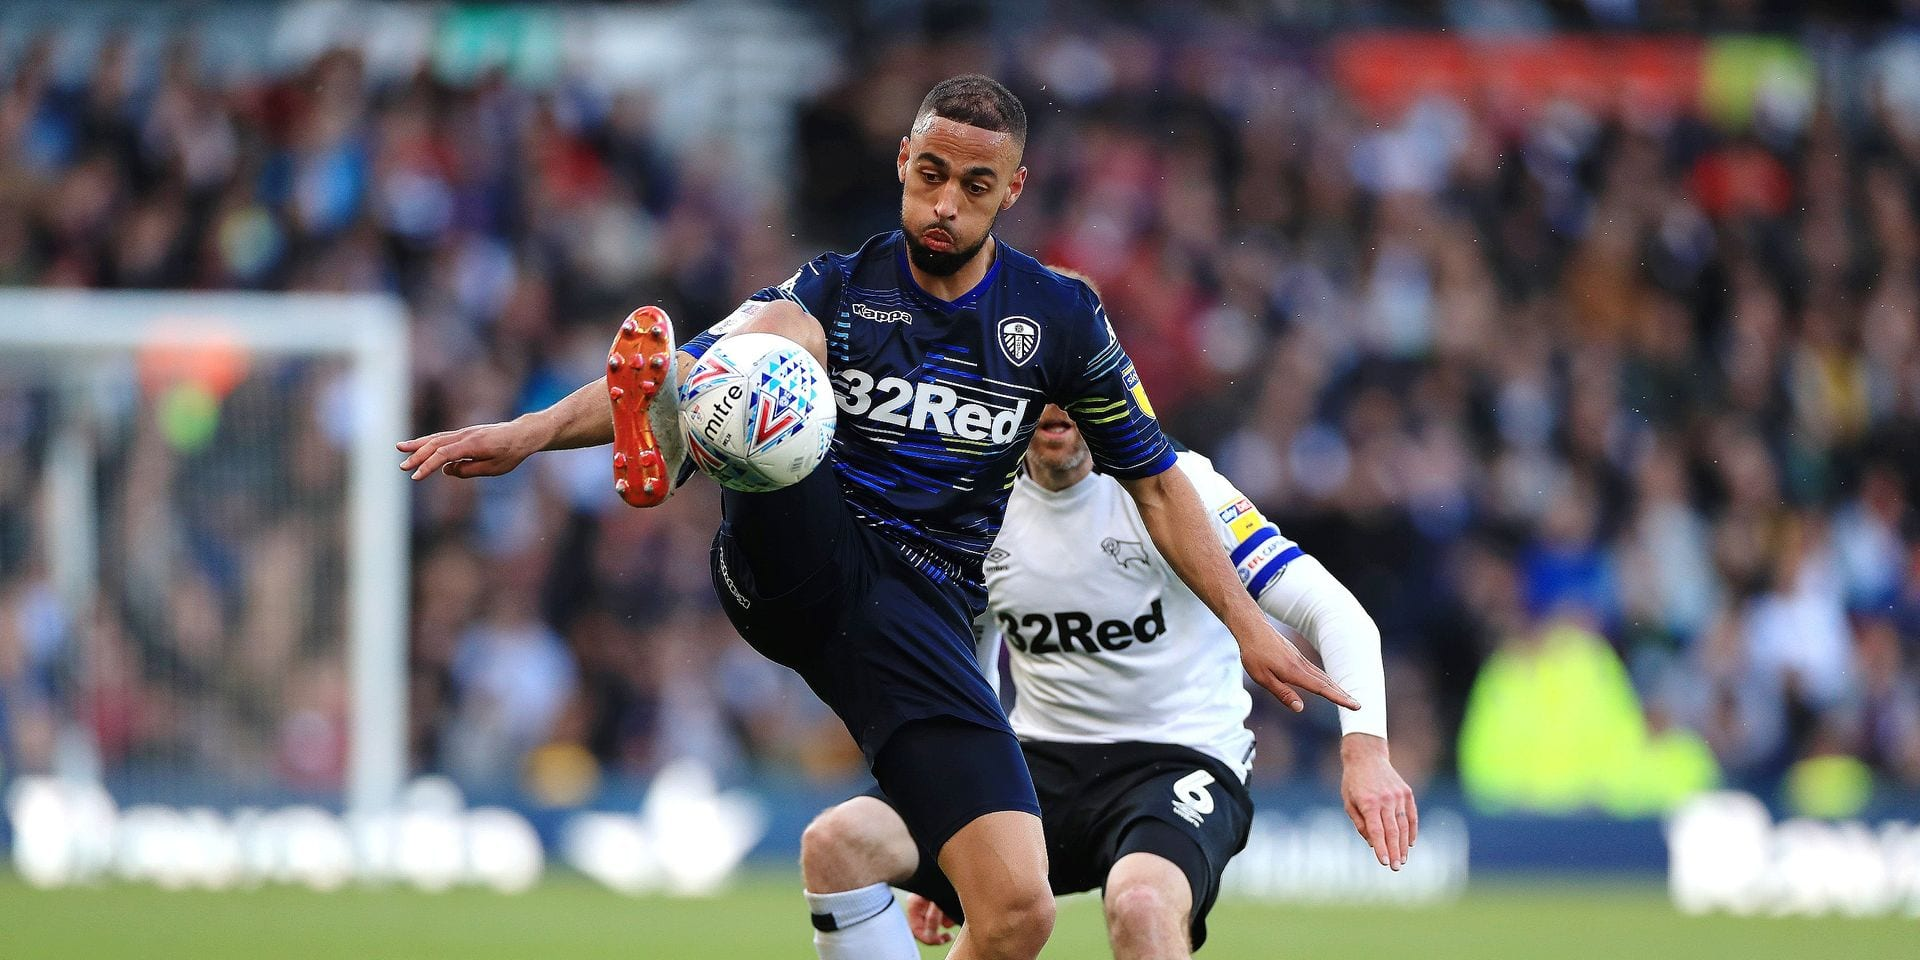 Derby County v Leeds United - Sky Bet Championship Play-off - Semi Final - First Leg - Pride Park